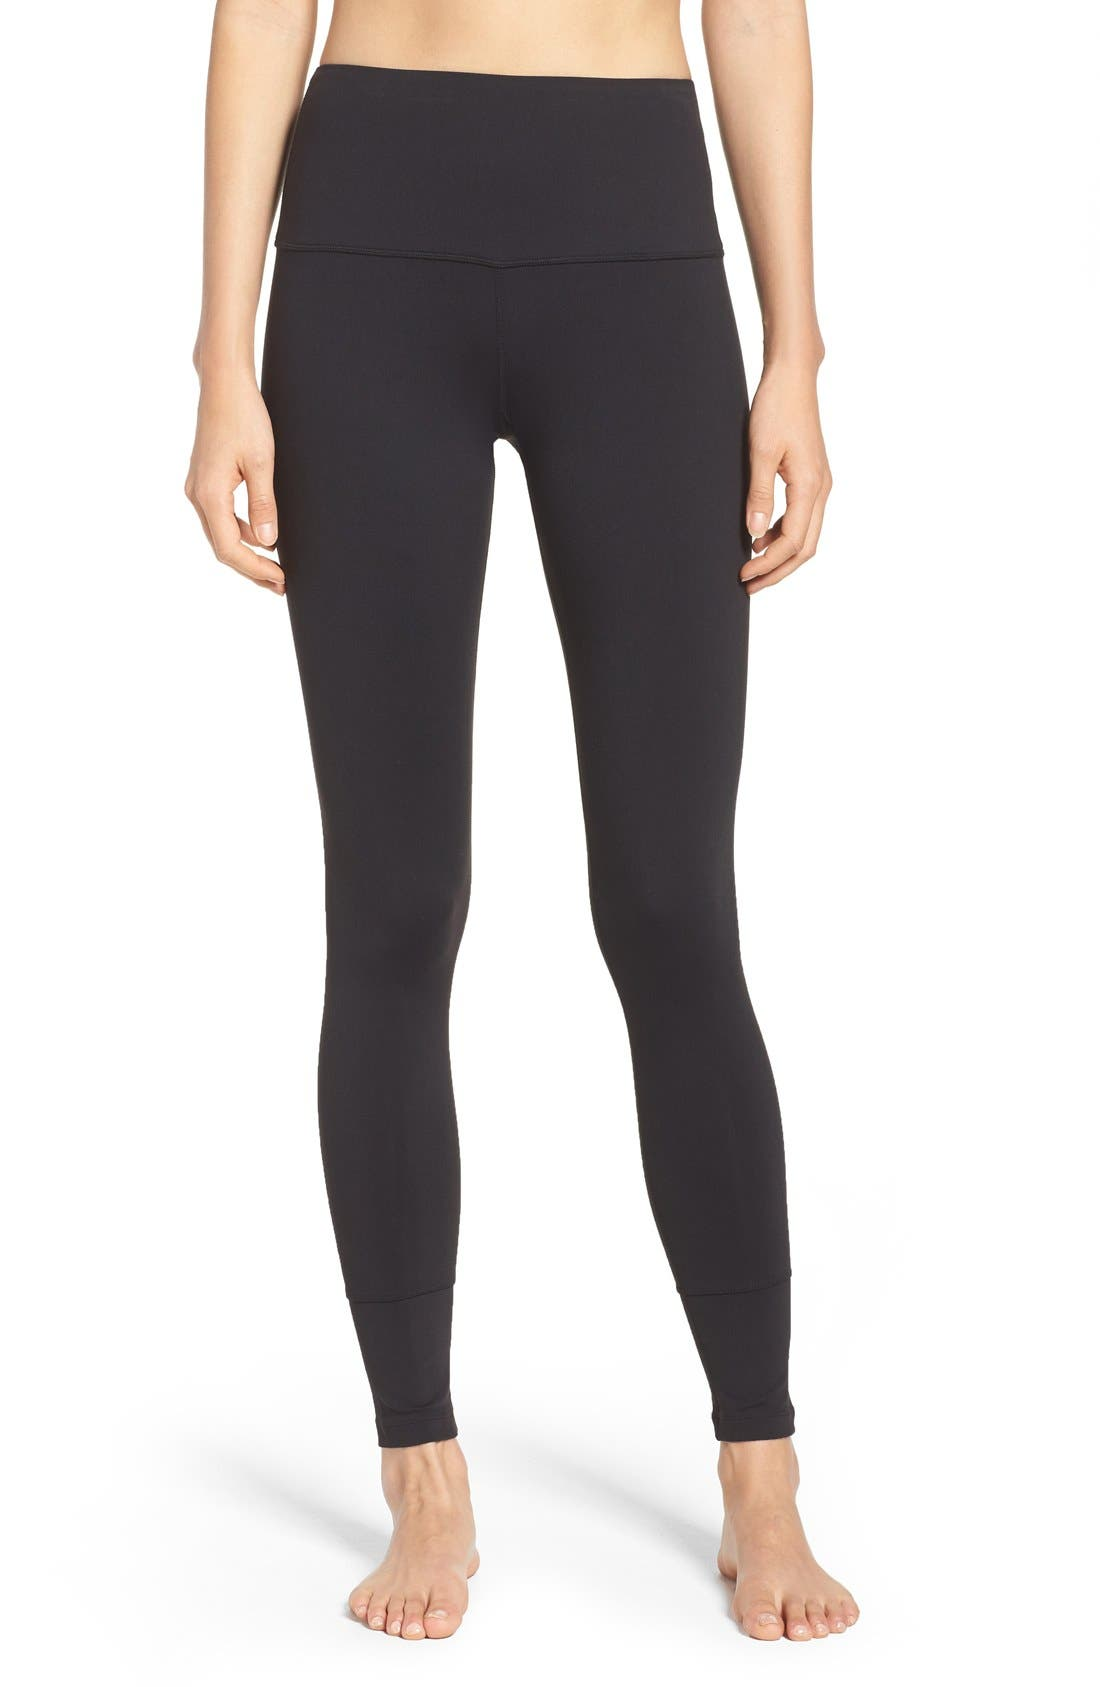 'Bardot' High Waist Leggings,                             Main thumbnail 1, color,                             001